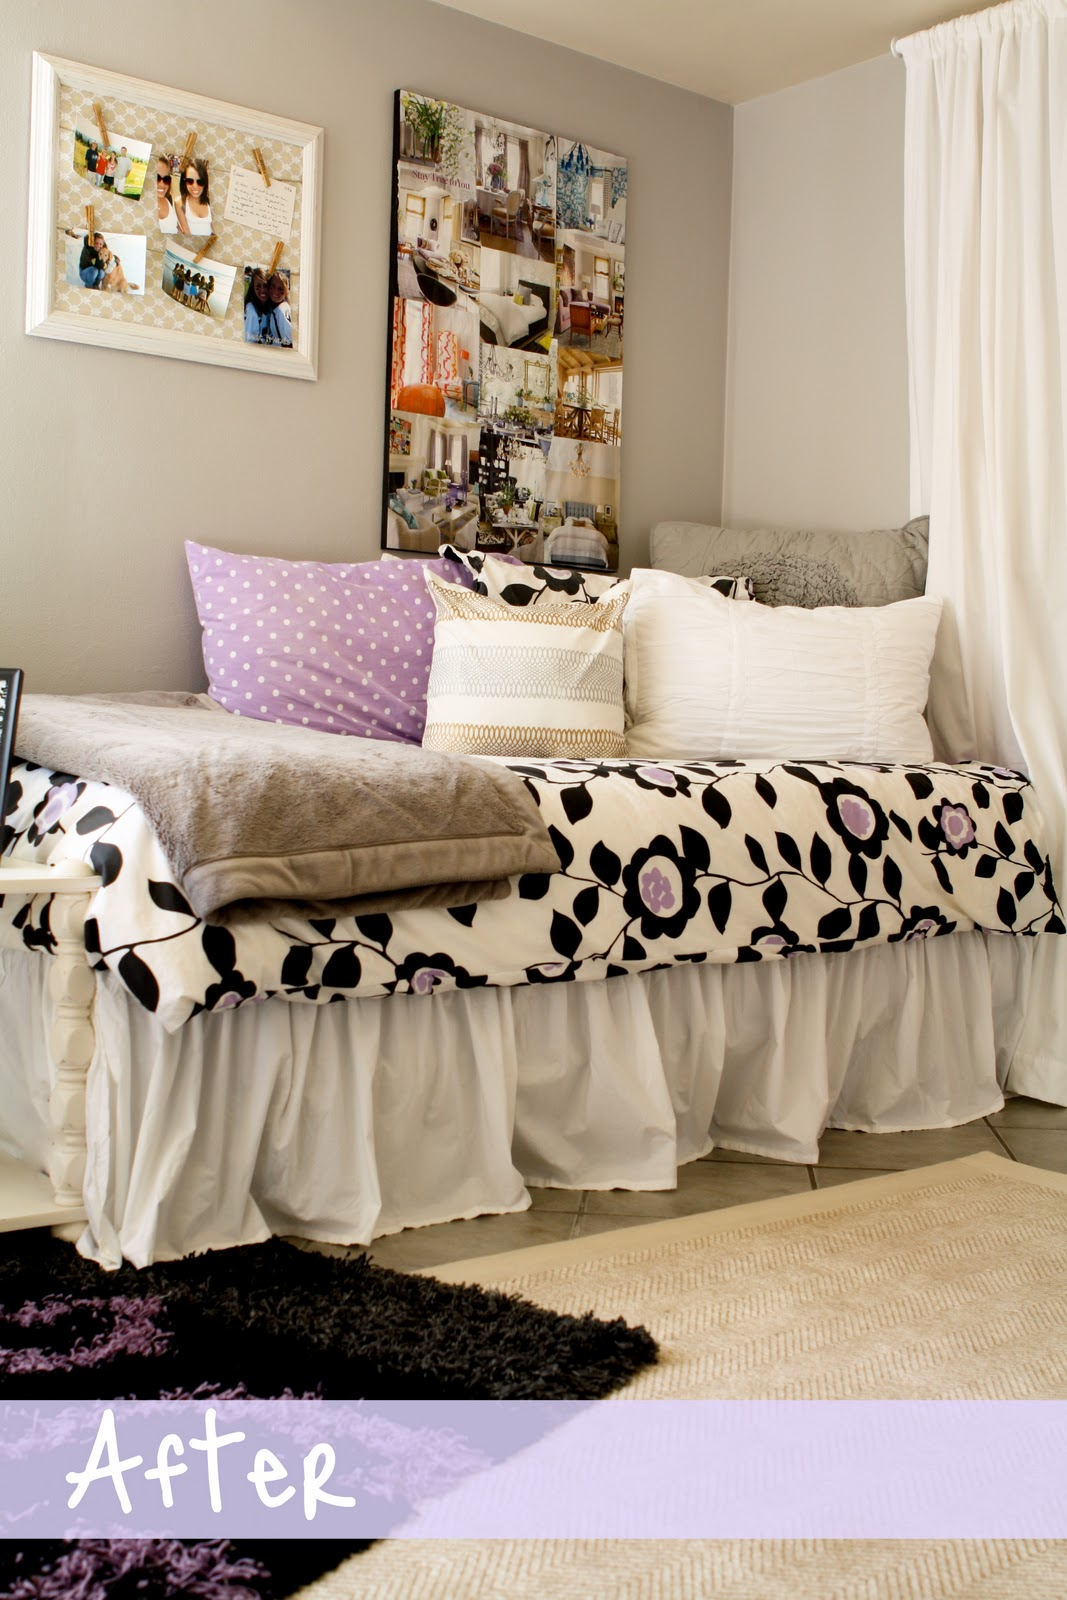 Purple gray white oh my michaela noelle designs - Dorm room bedding ideas ...